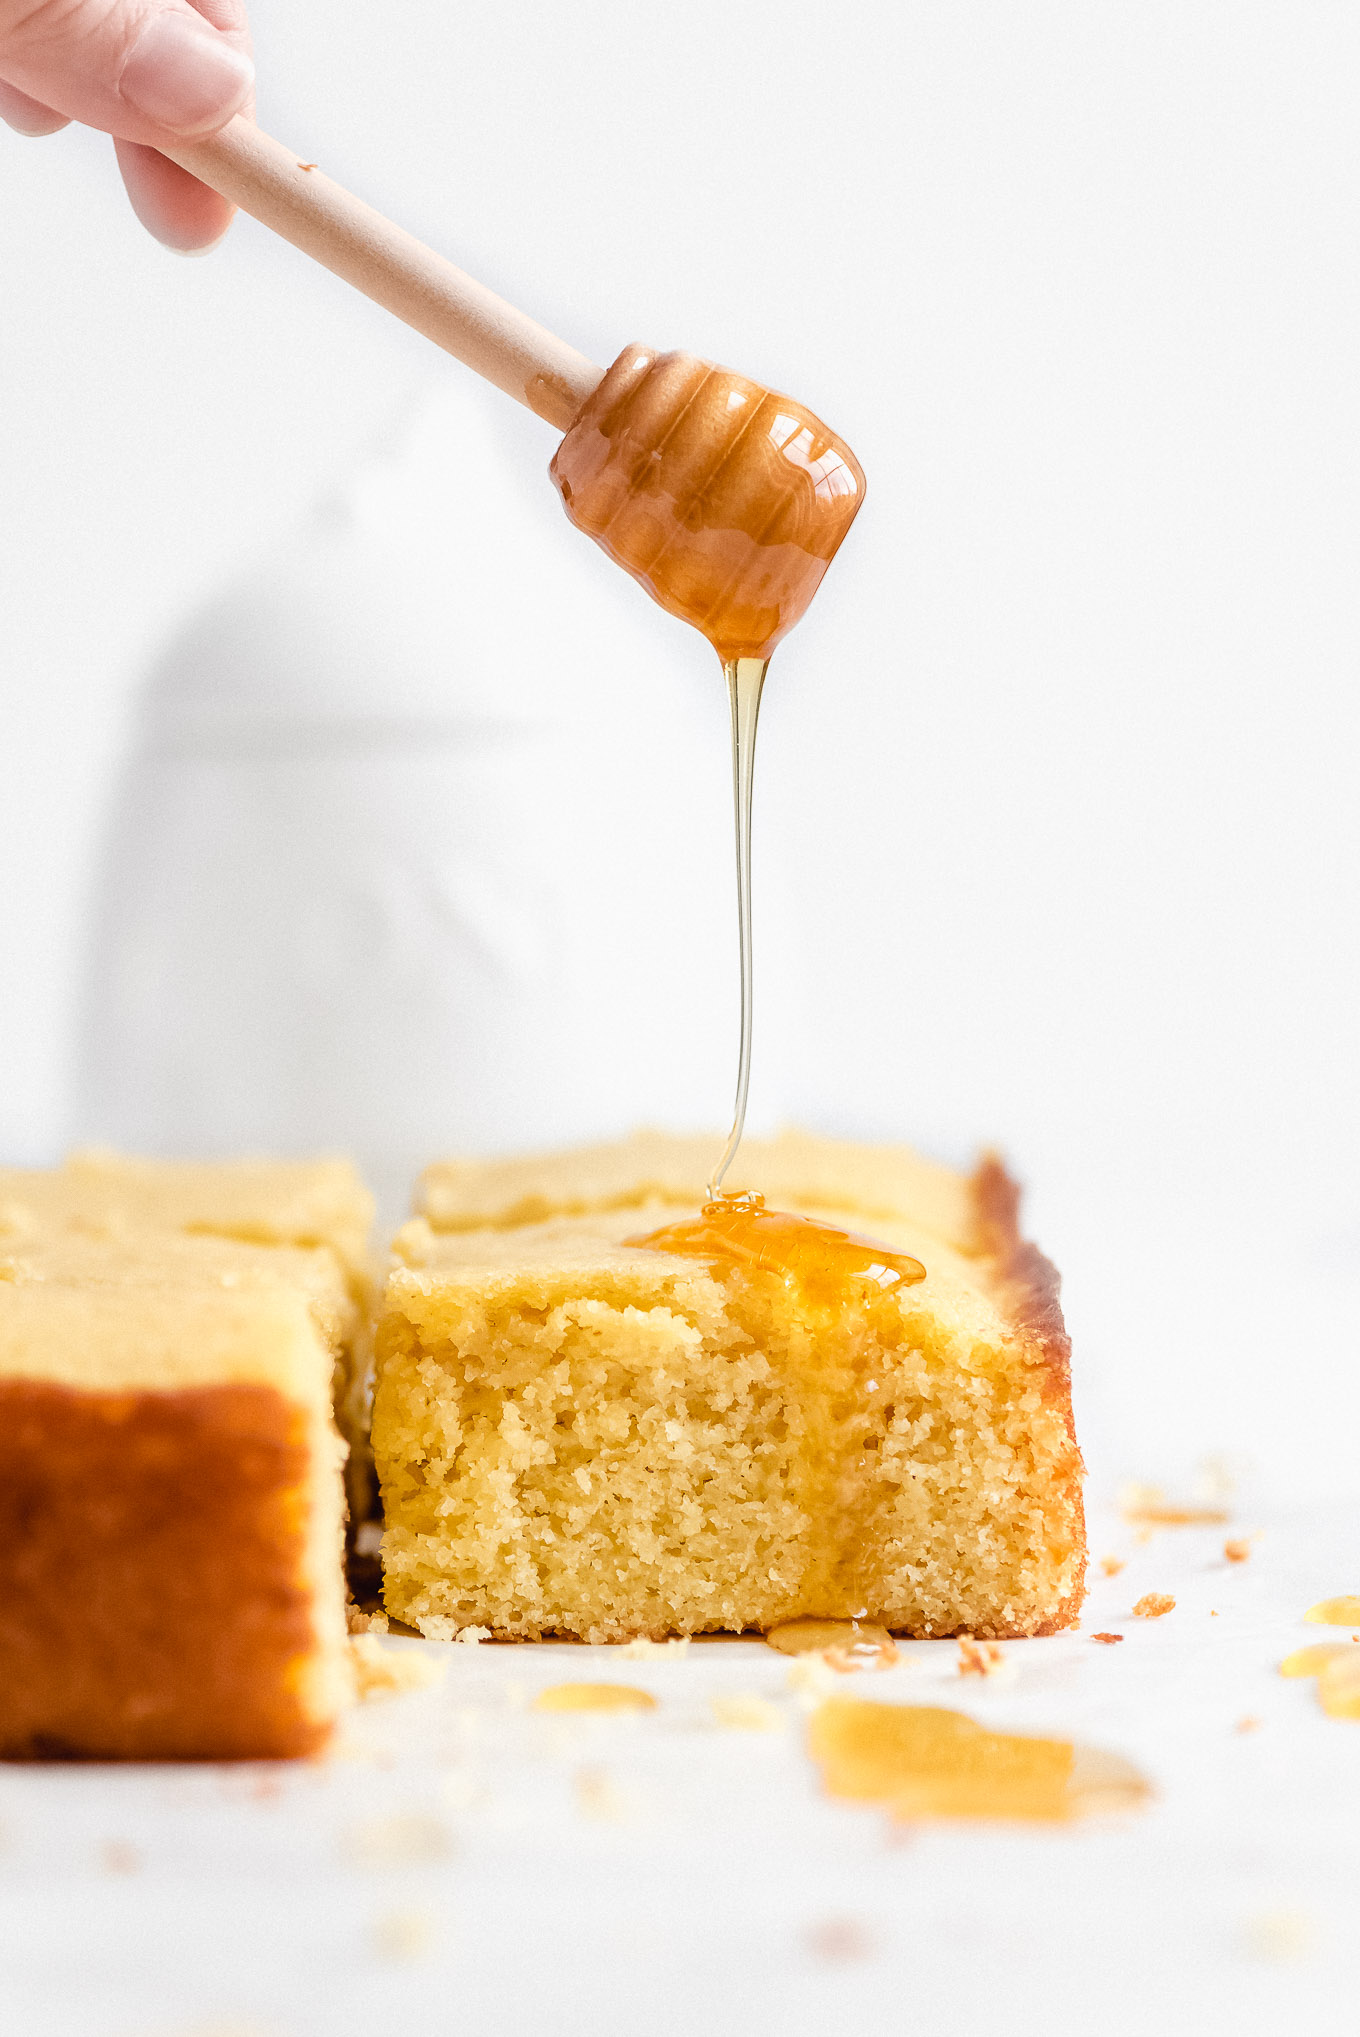 Drizzling golden honey over a piece of tender Buttermilk Cornbread.